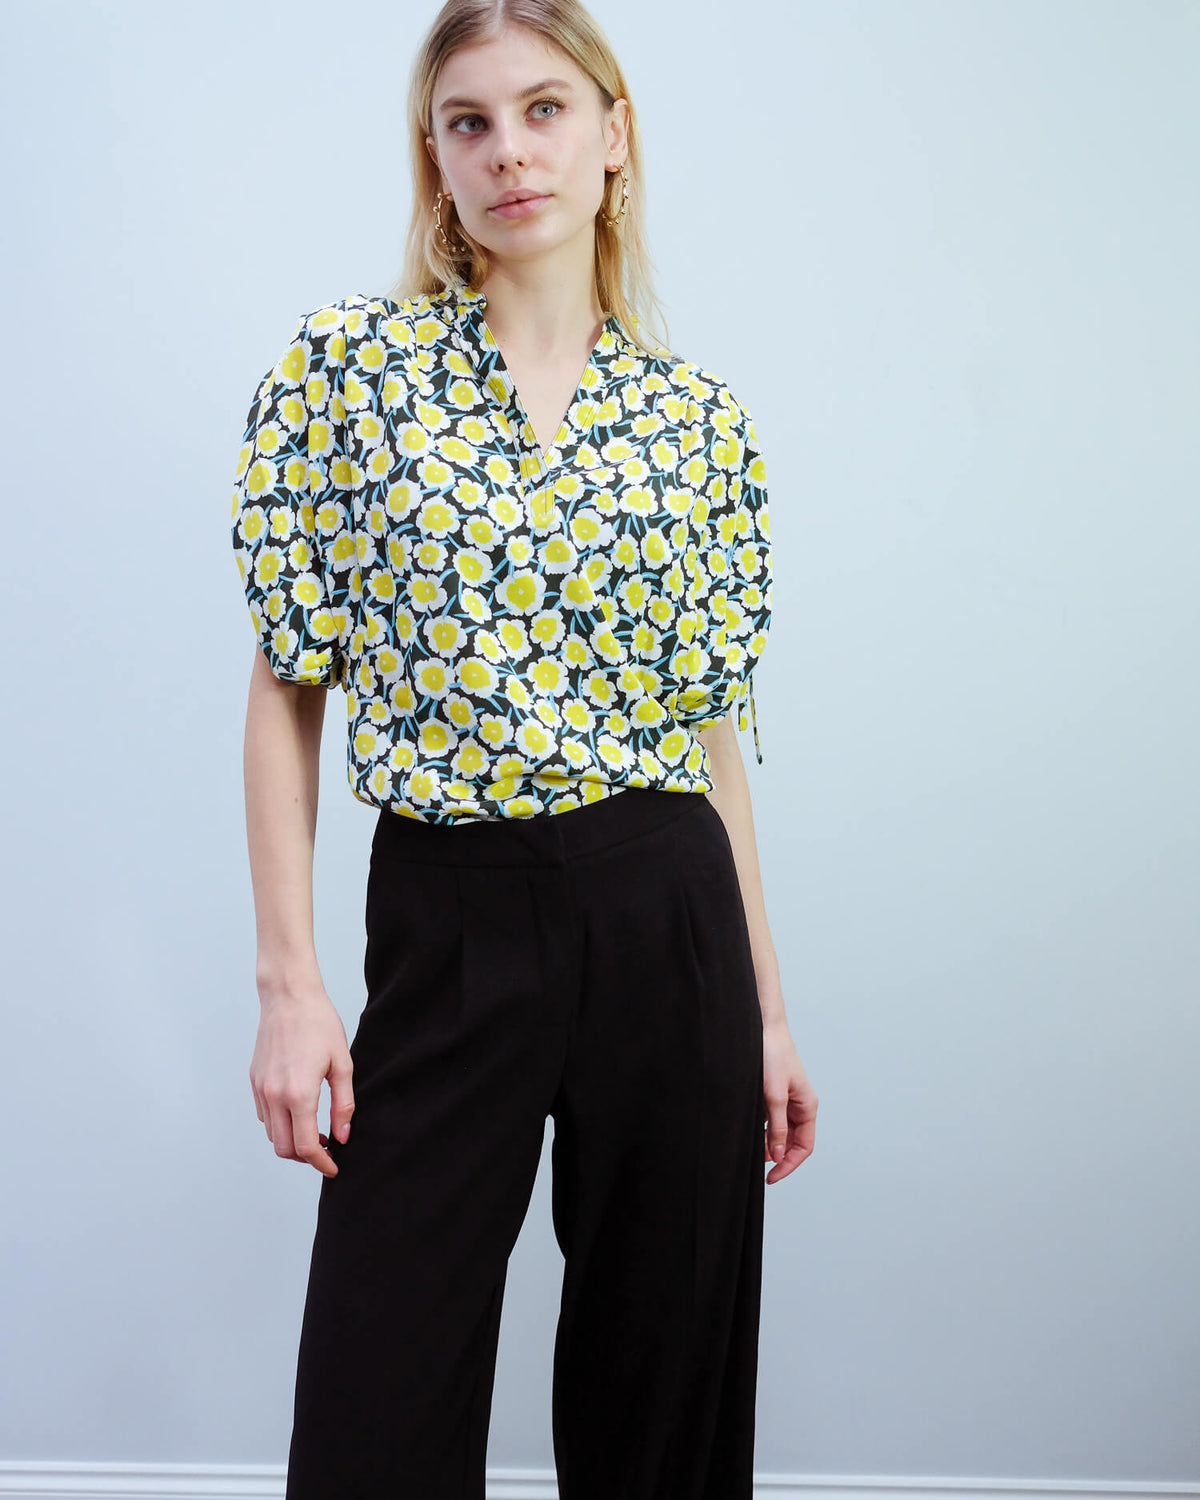 DVF Grania top in daisies canteen